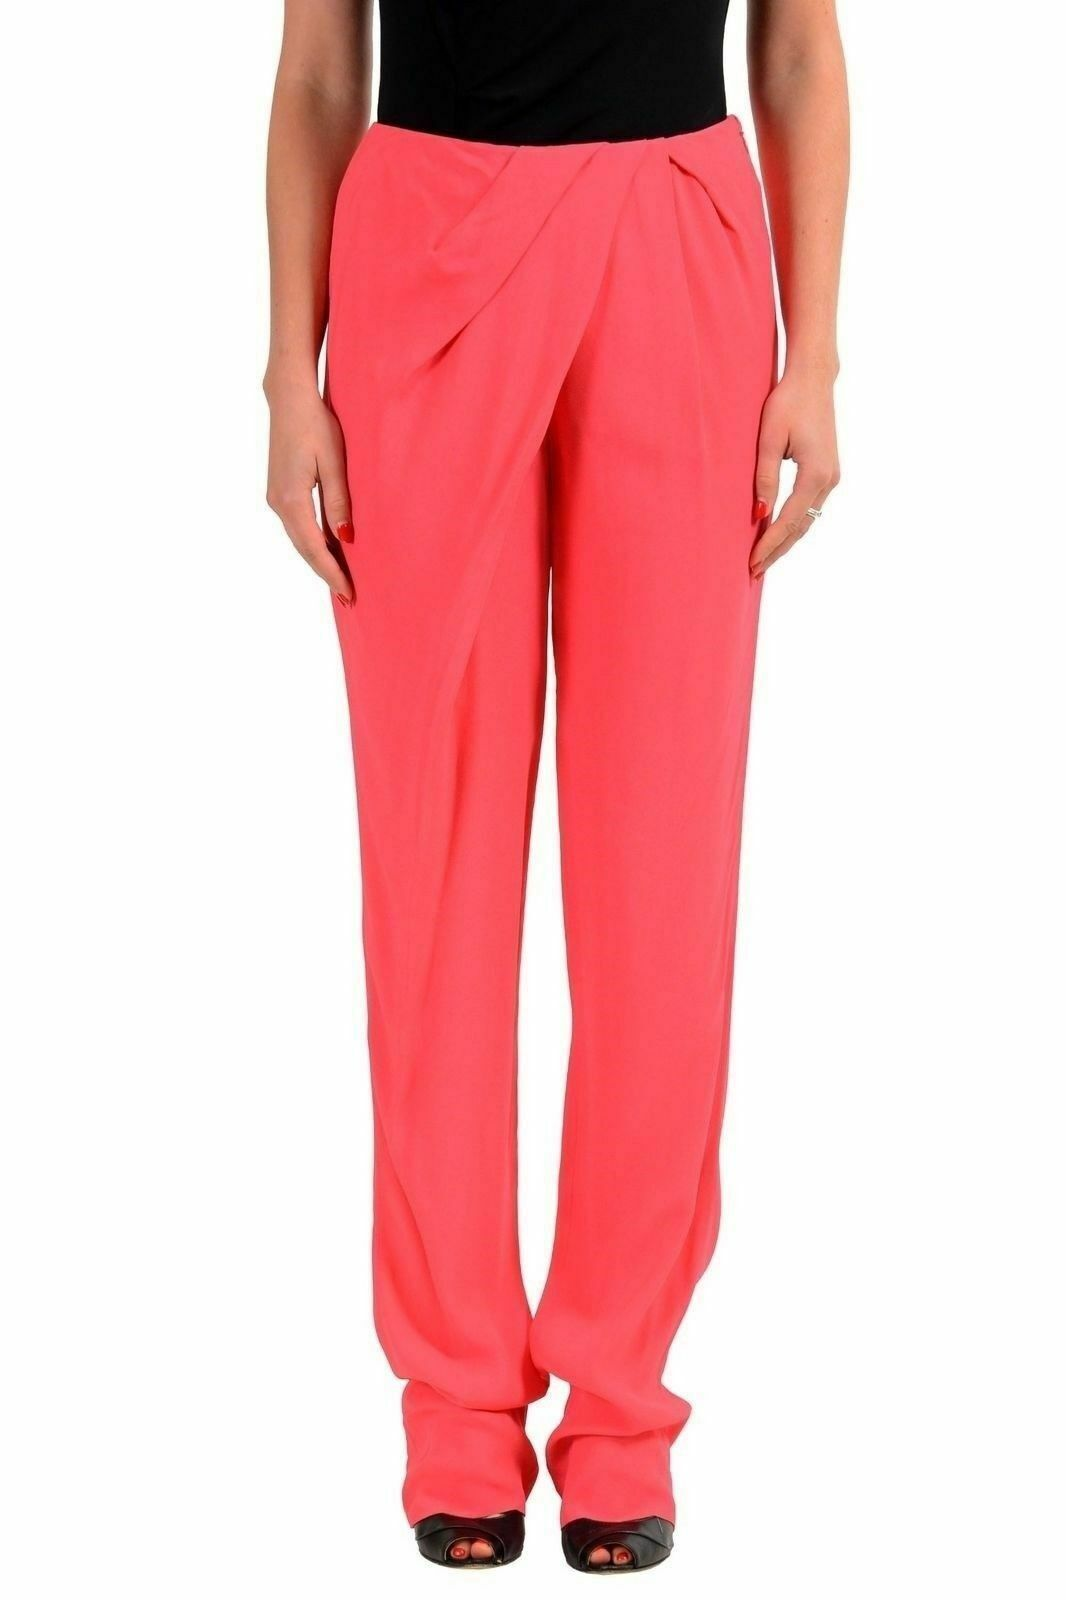 Viktor & Rolf Coral Red Women'S Casual Pants US S IT 40